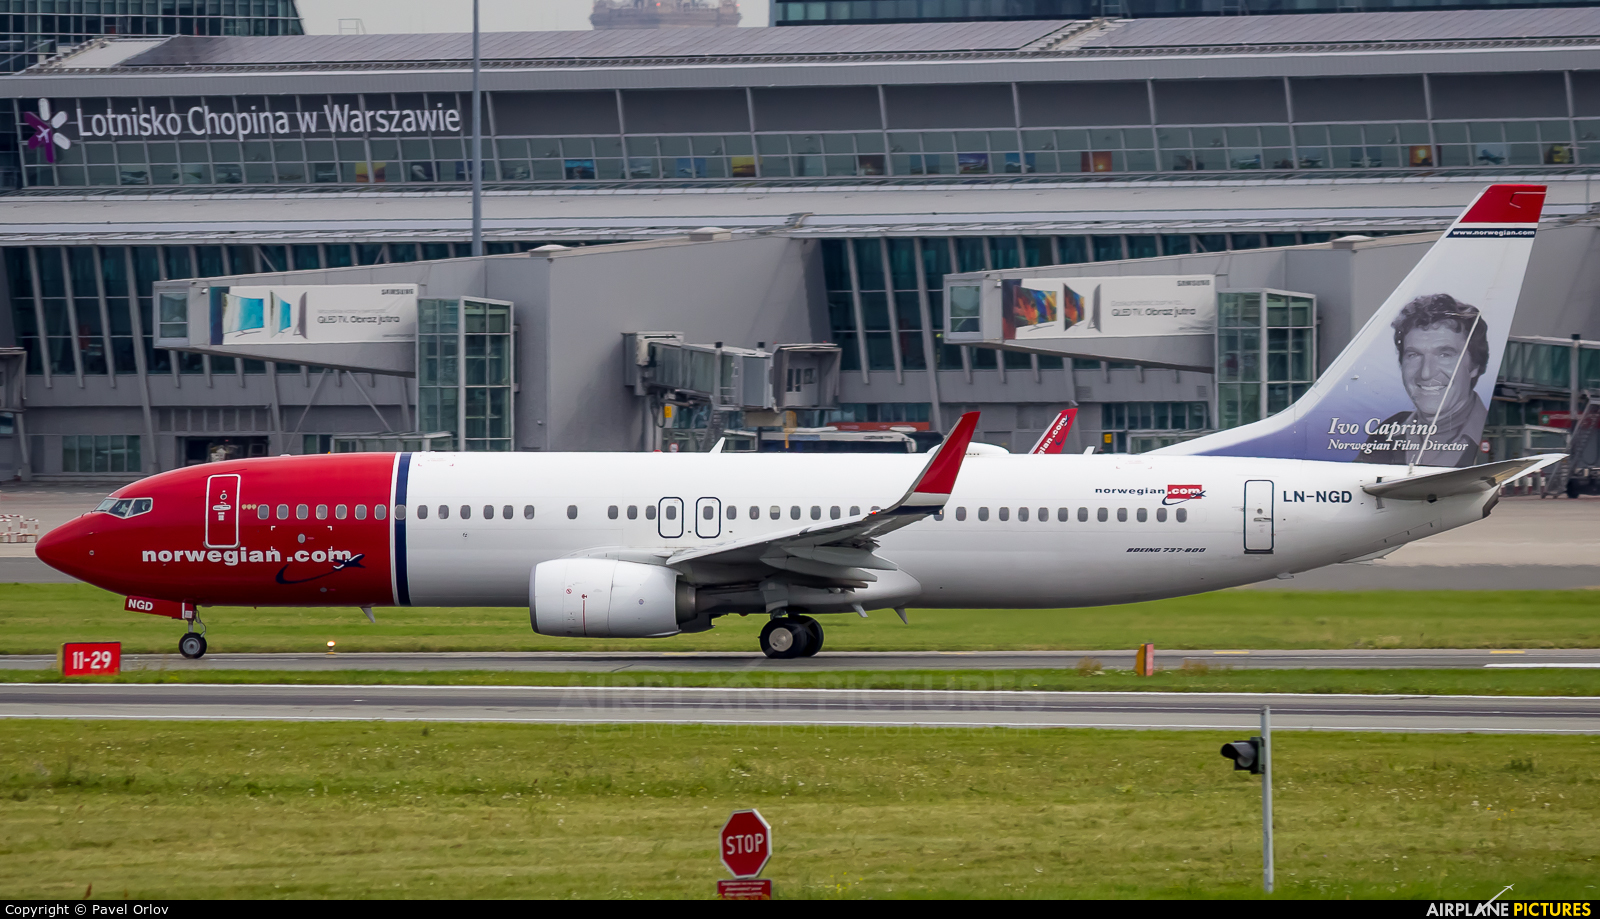 Norwegian Air Shuttle LN-NGD aircraft at Warsaw - Frederic Chopin